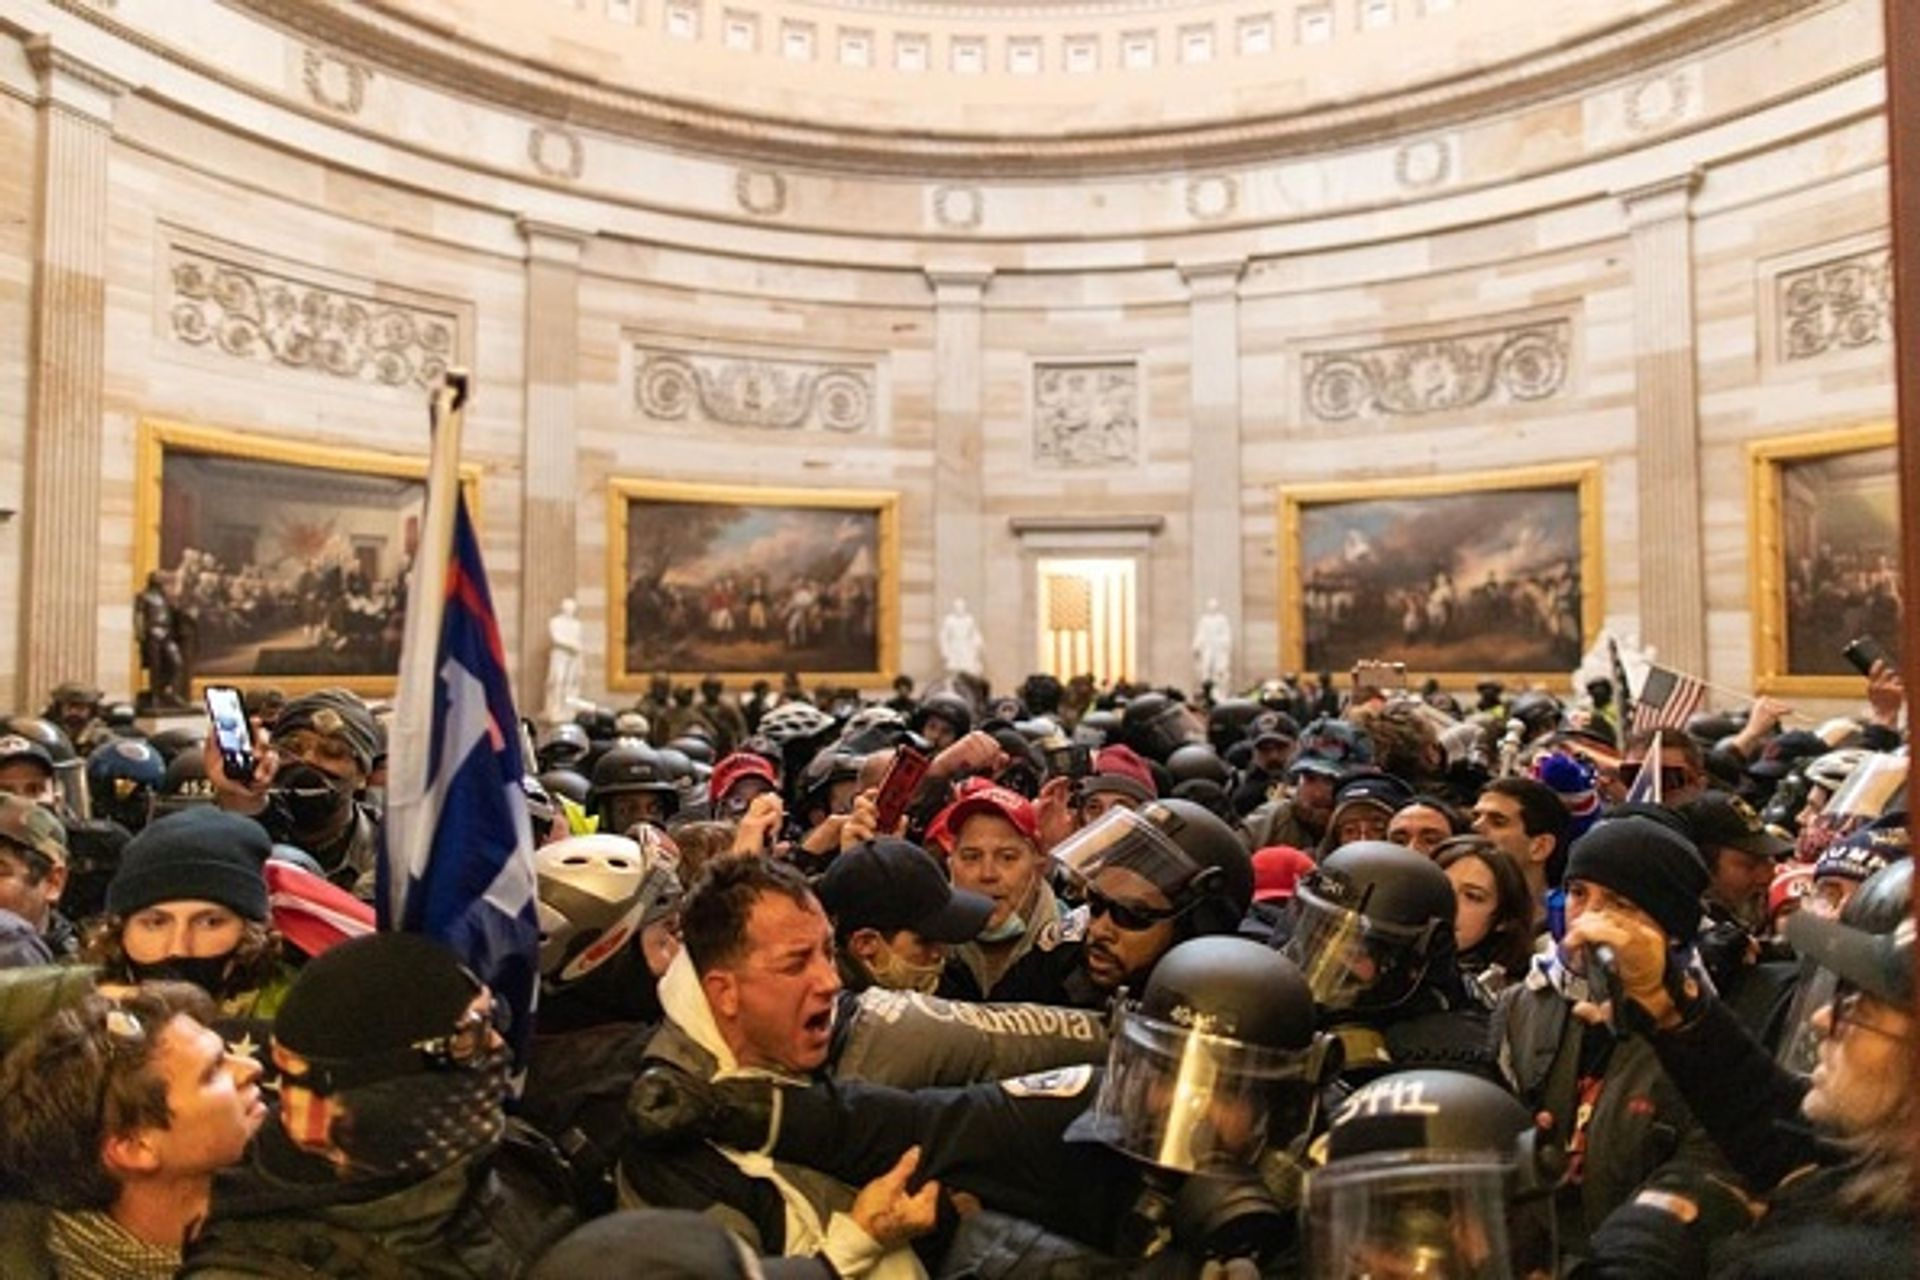 Pro-Trump rioters stormed the US Capitol as lawmakers were set to sign off Wednesday on President-elect Joe Biden's electoral victory Photo: Mostafa Bassim/Anadolu Agency via Getty Images